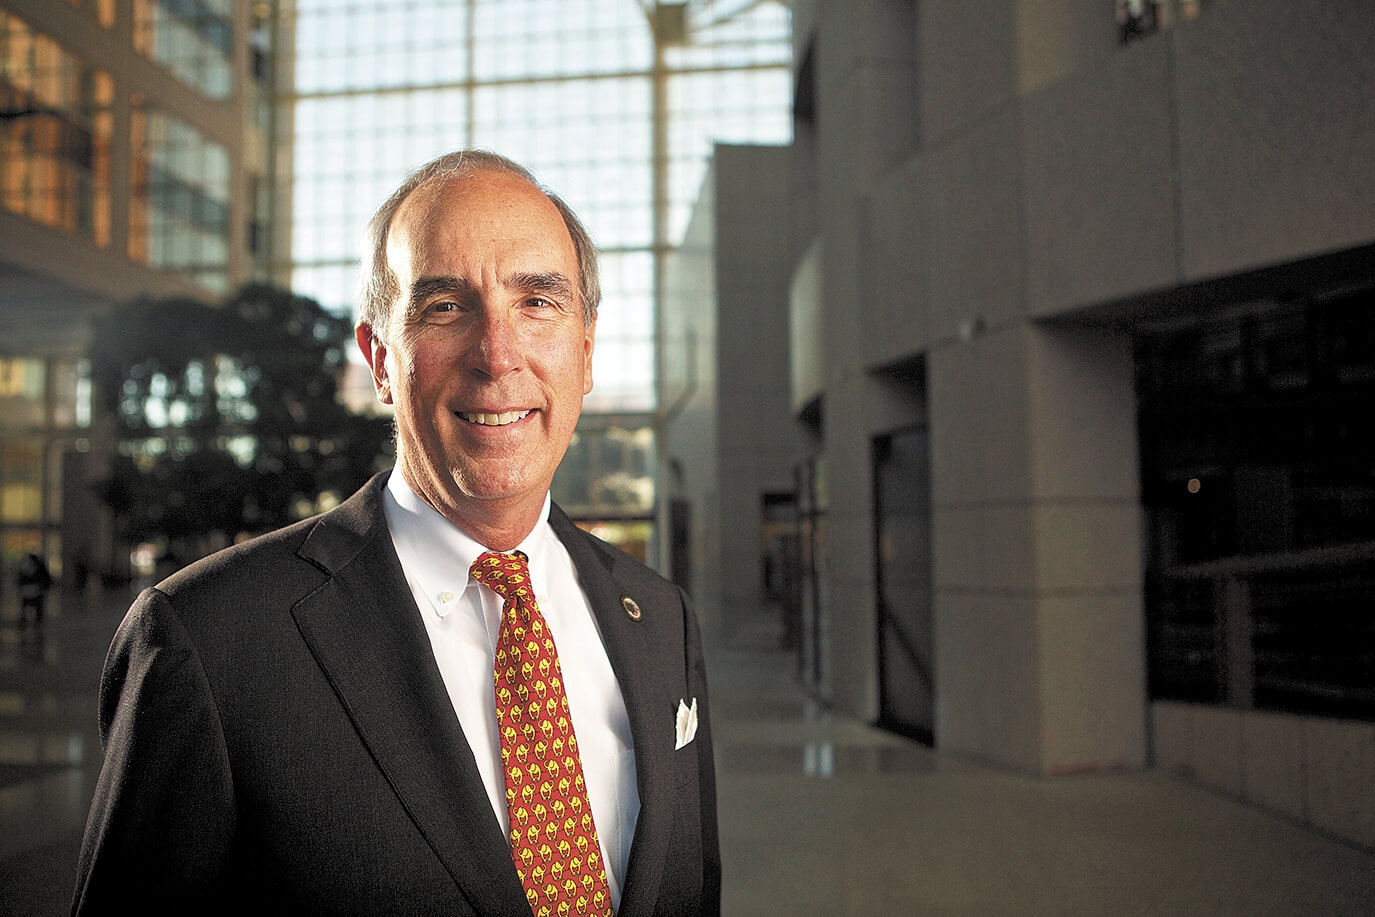 LISTEN: Mayor Sandy Stimpson gives an update on COVID-19 and Ladd-Peebles Stadium!